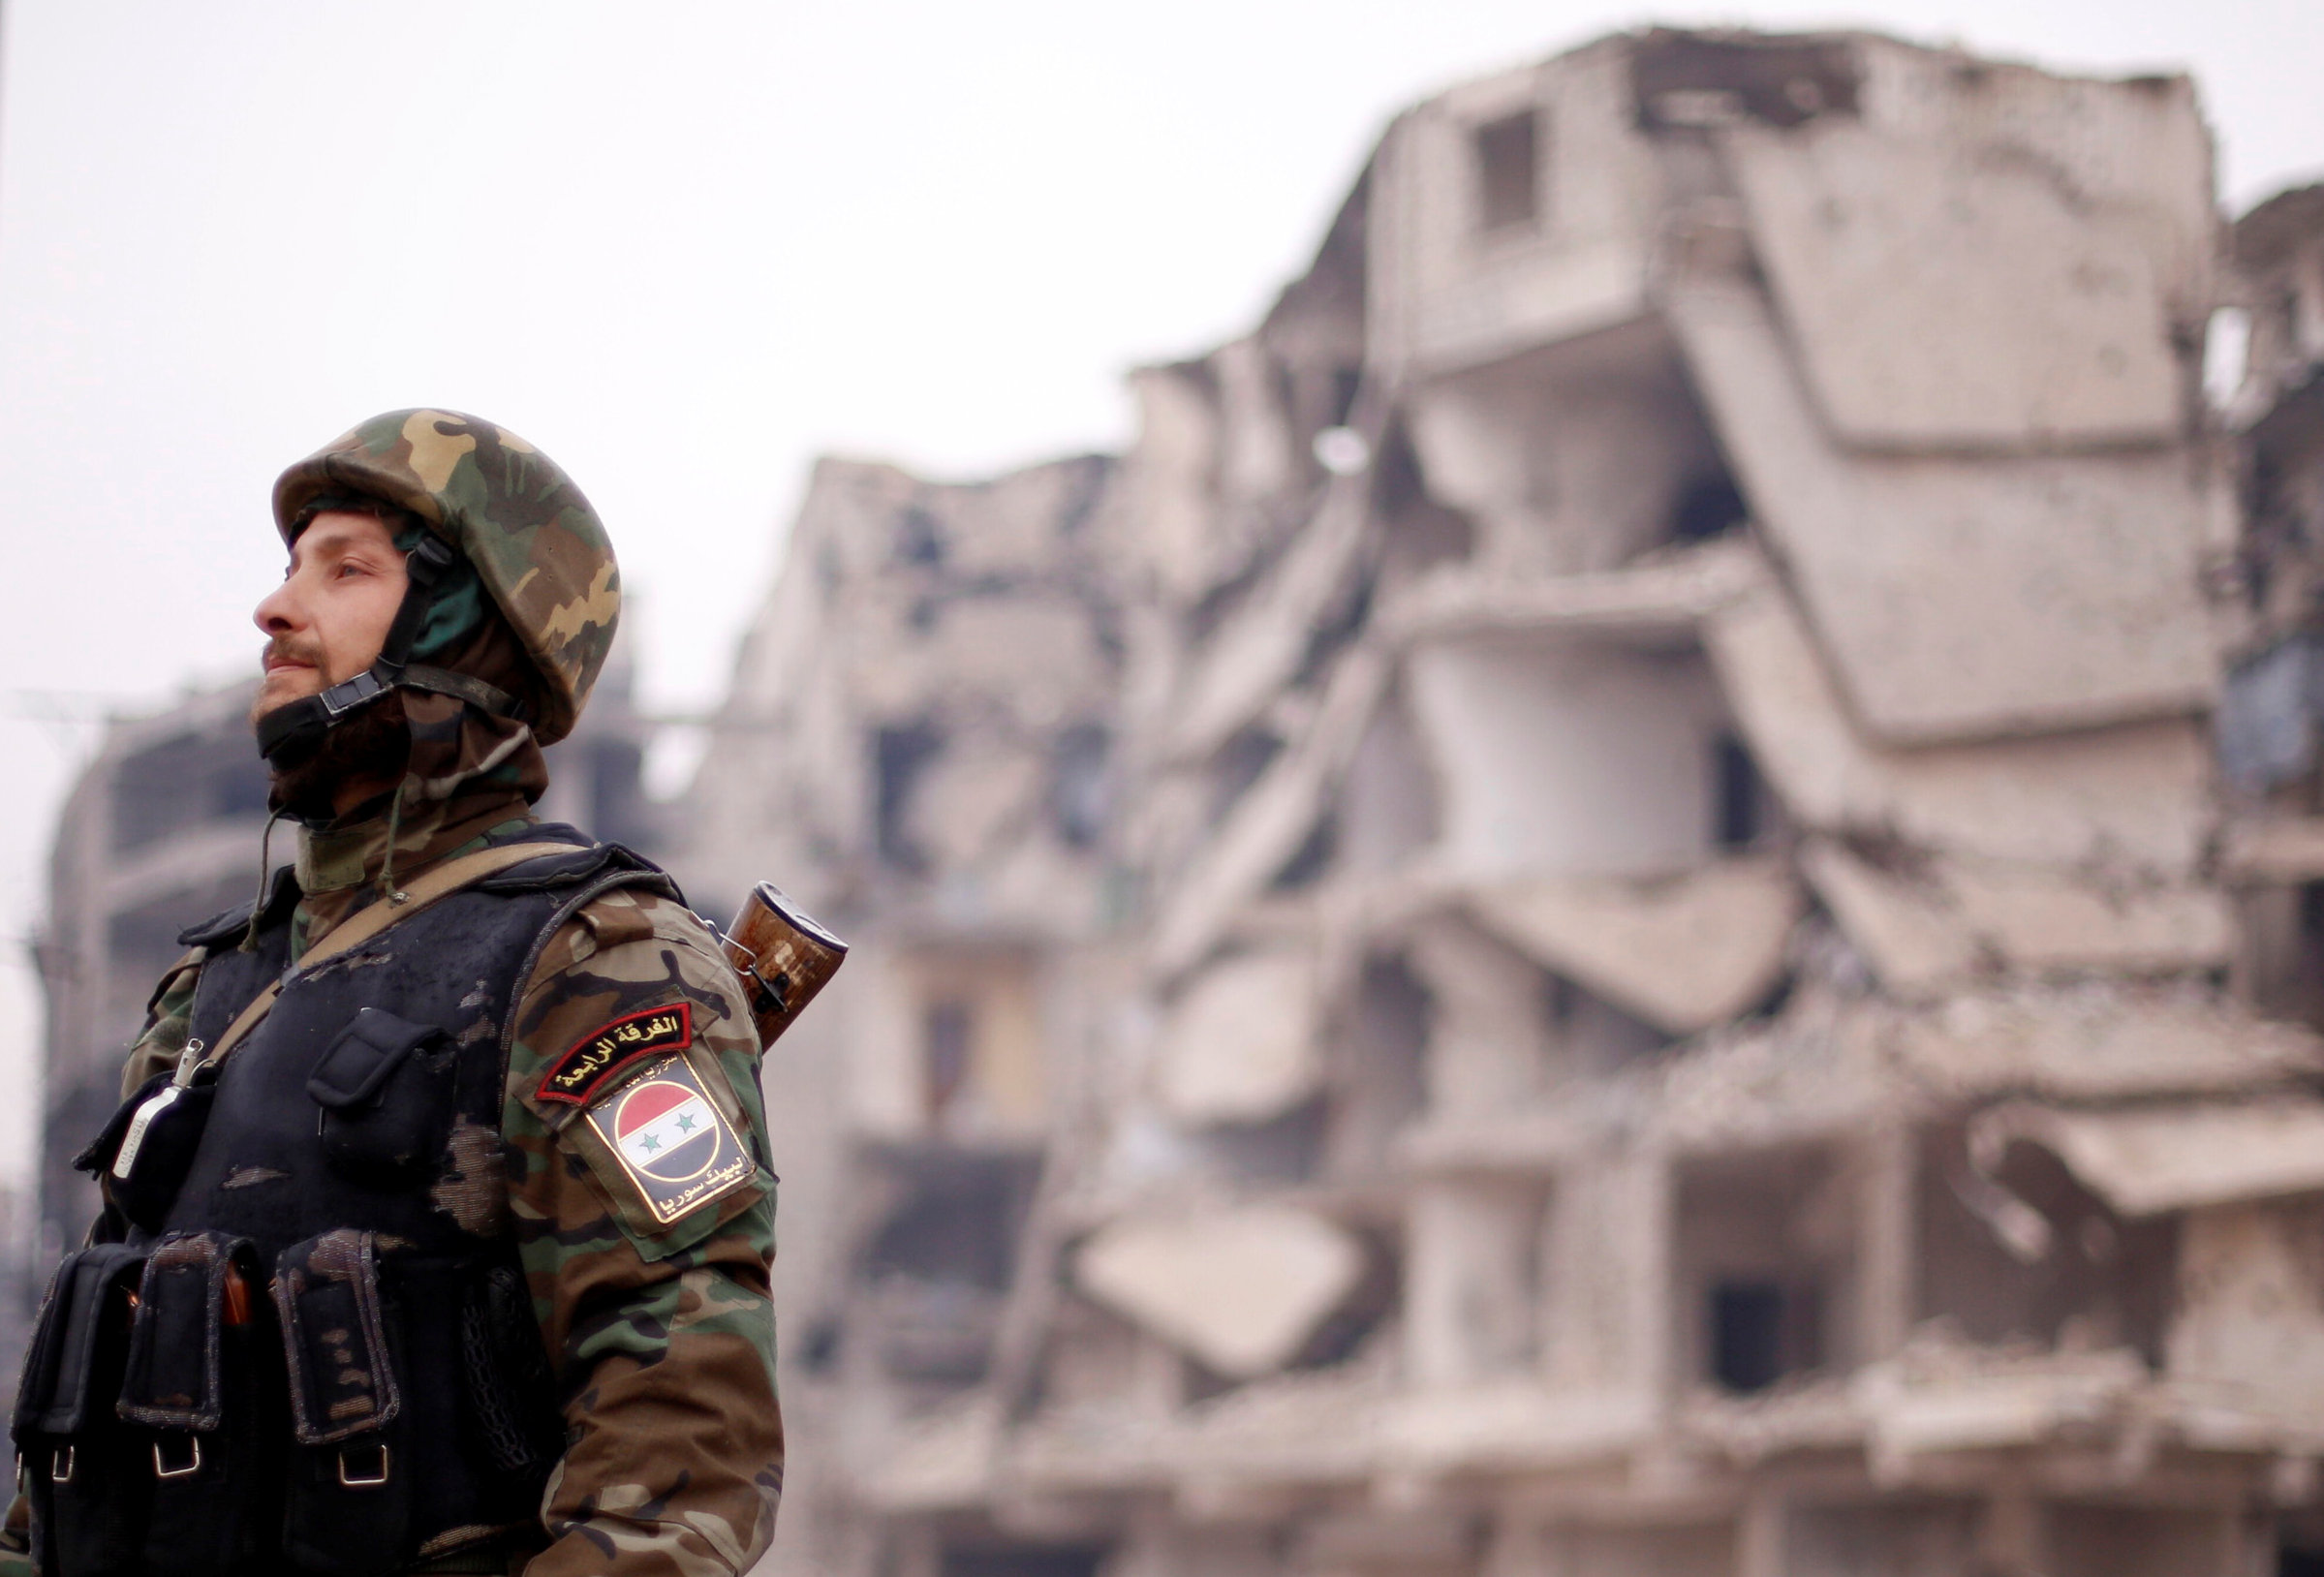 France pushes U.N. Security Council action on Aleppo